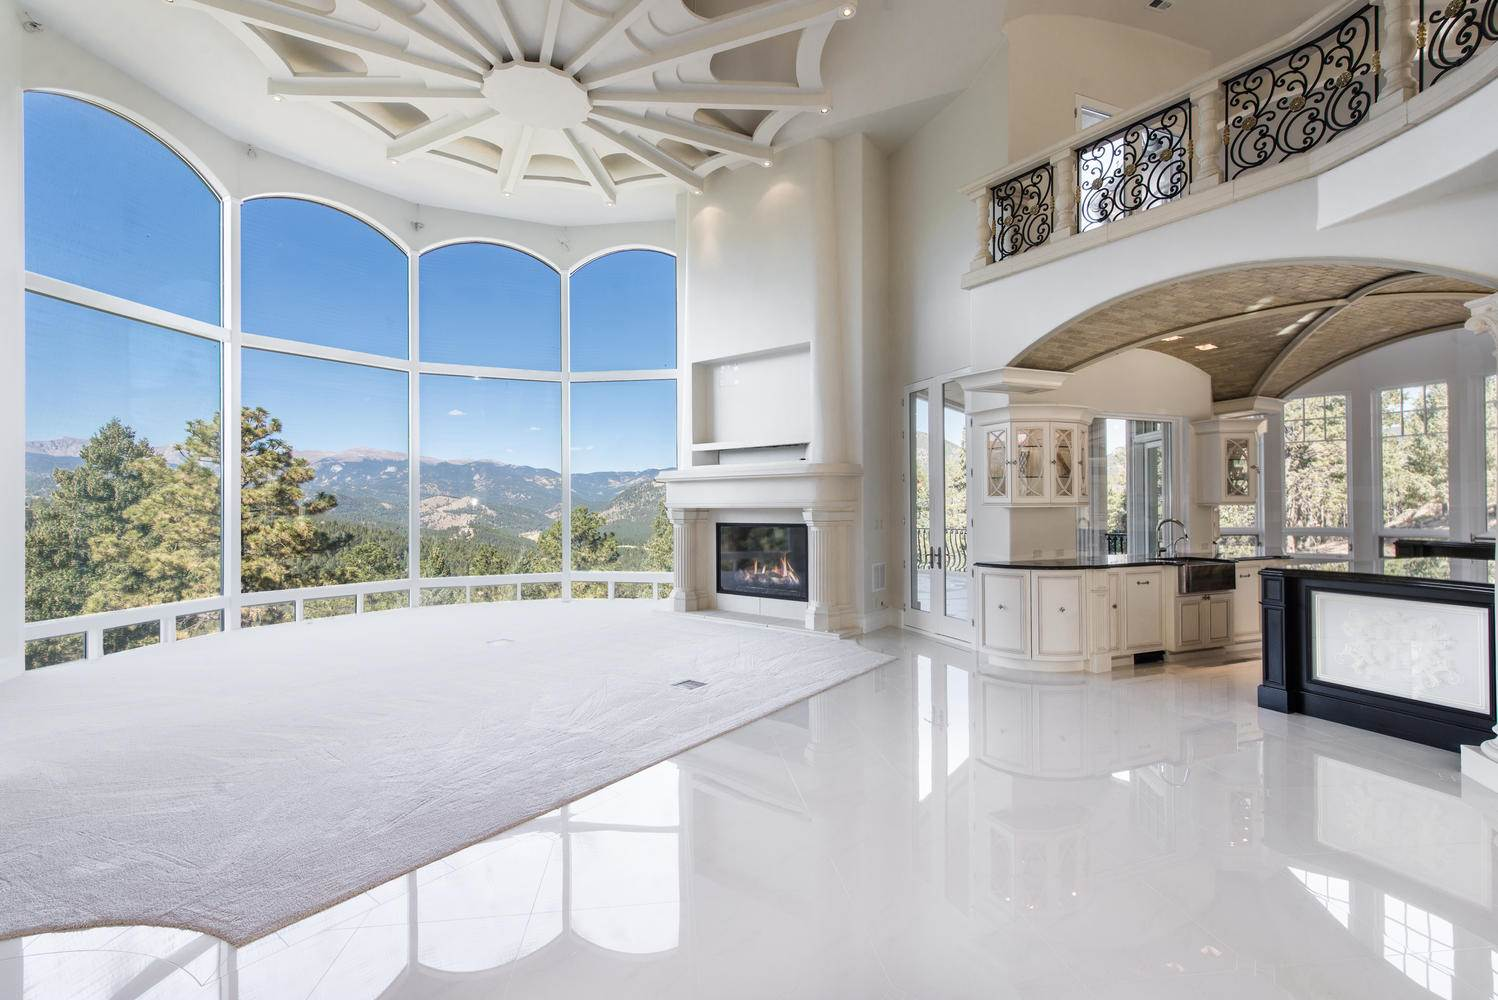 Extreme Homes Of Colorado Incredible Evergreen Chateau For Sale 175M